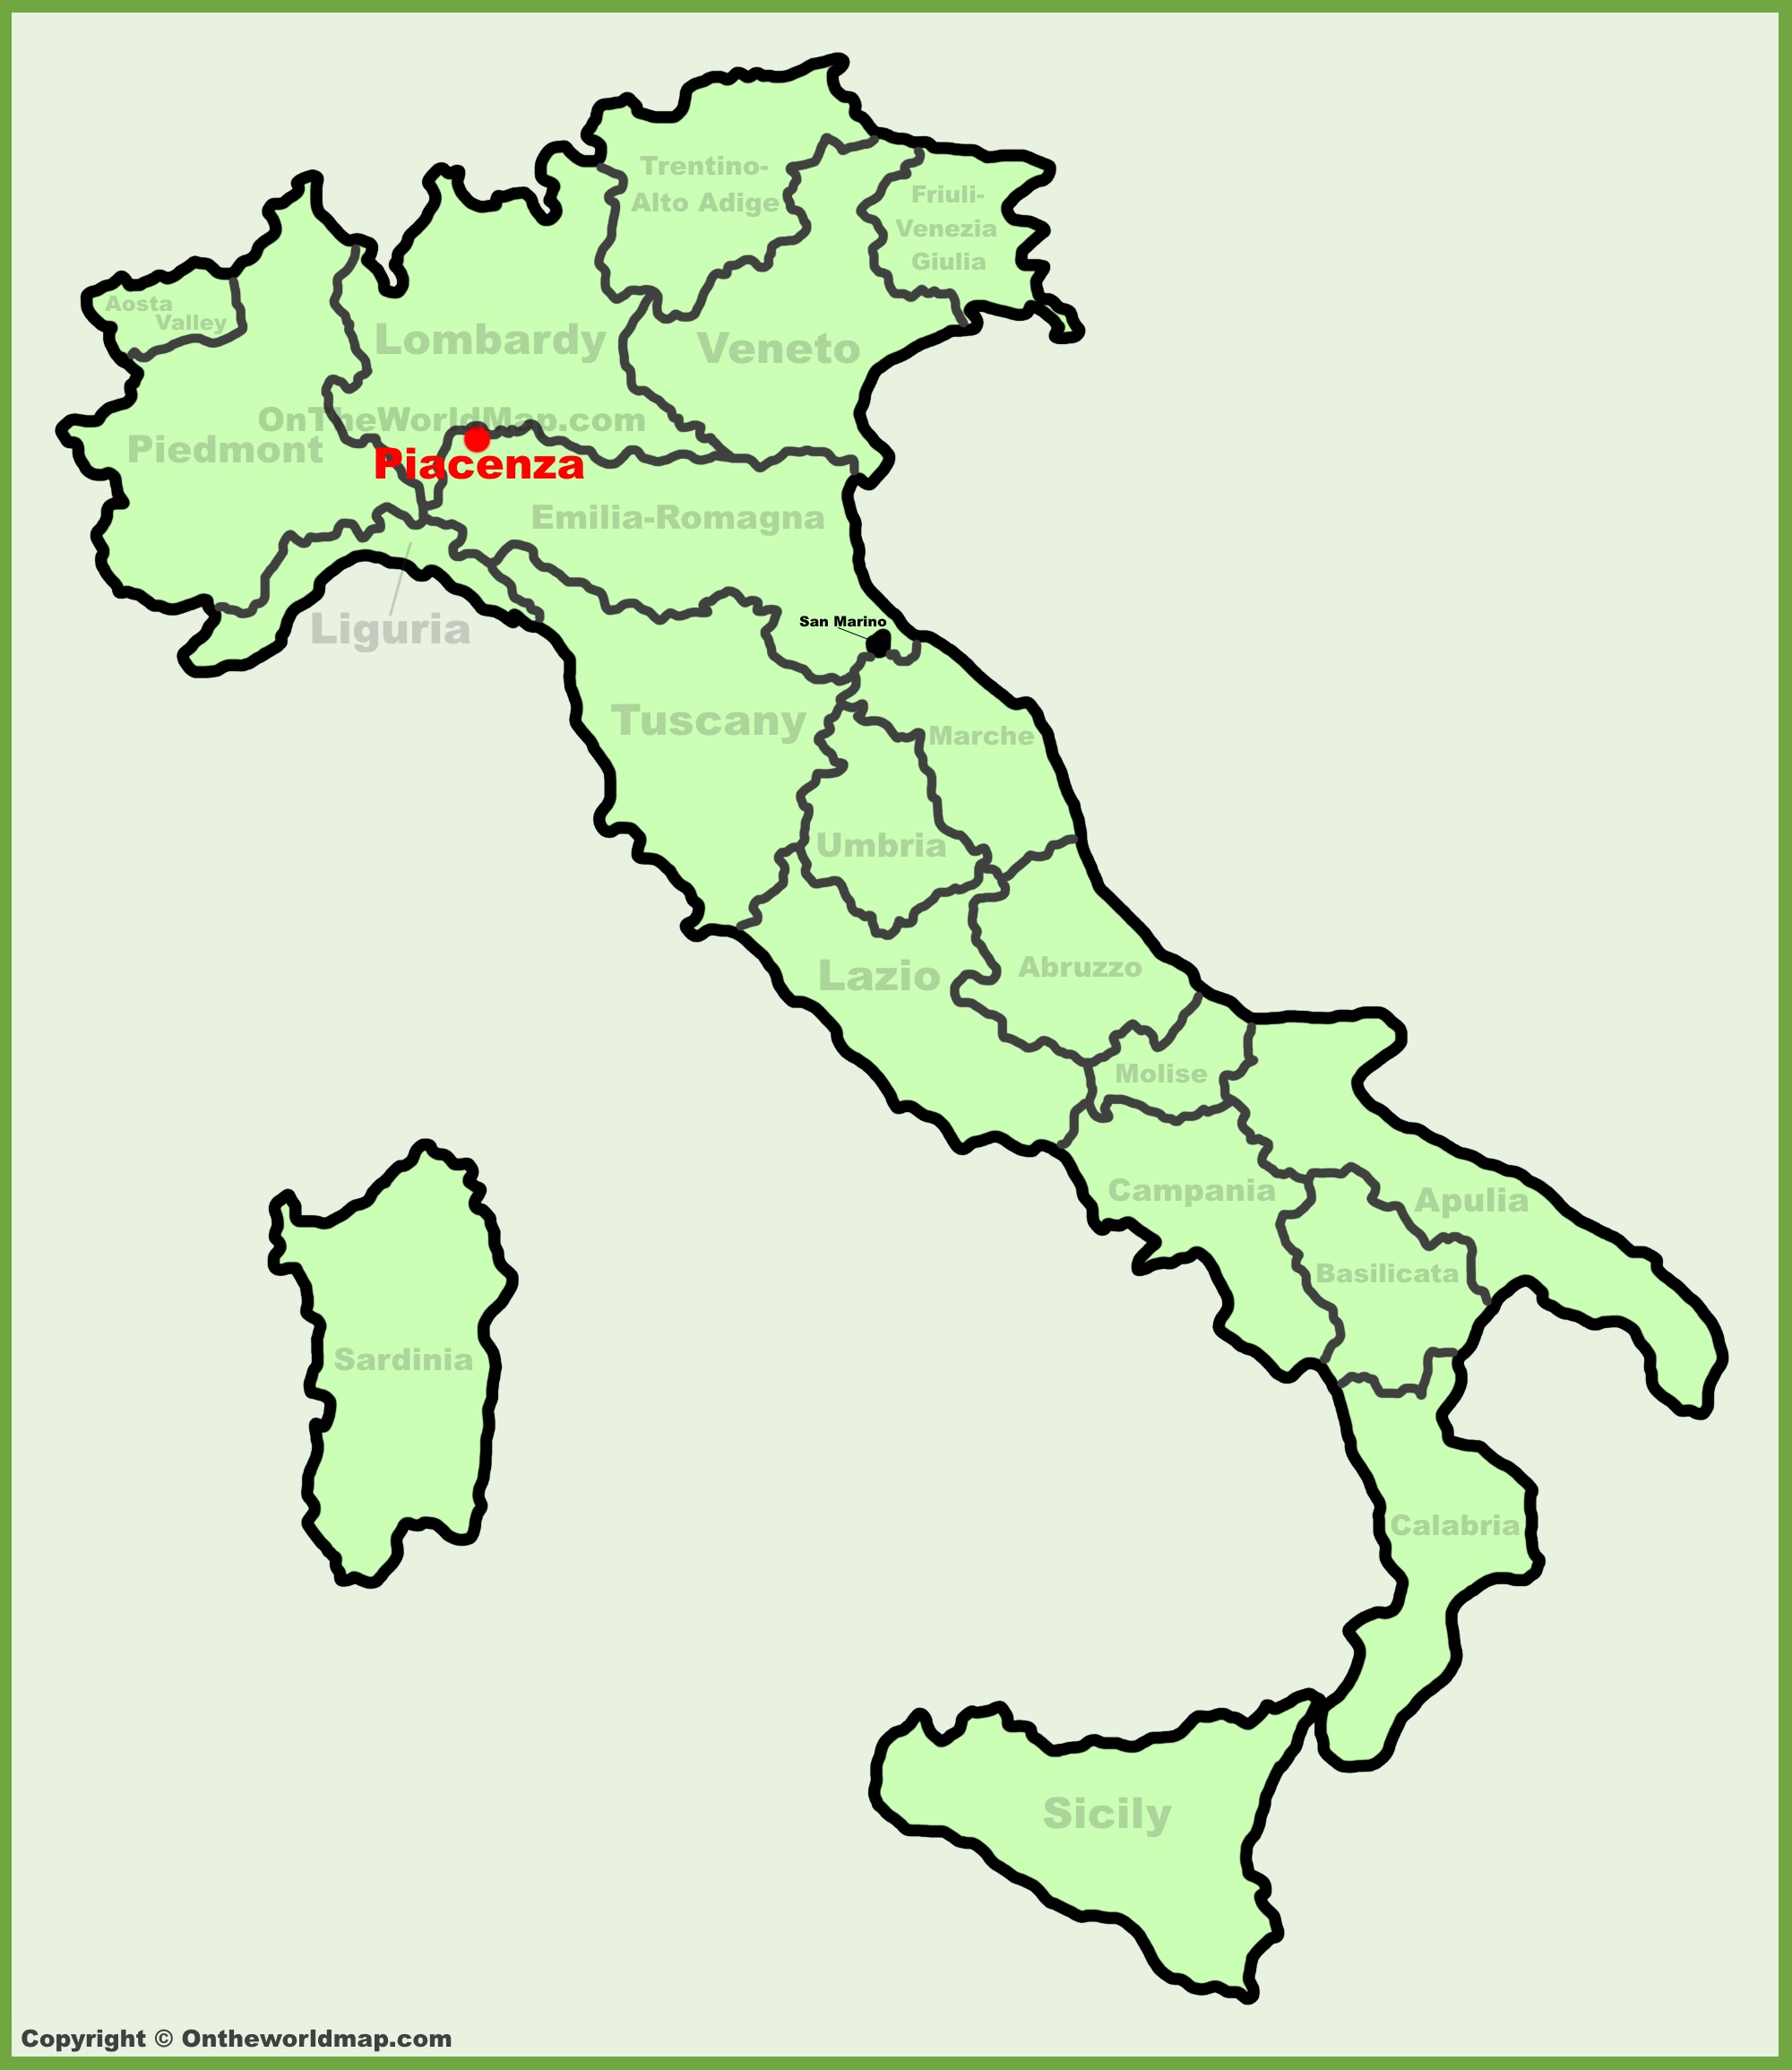 Piacenza location on the Italy map